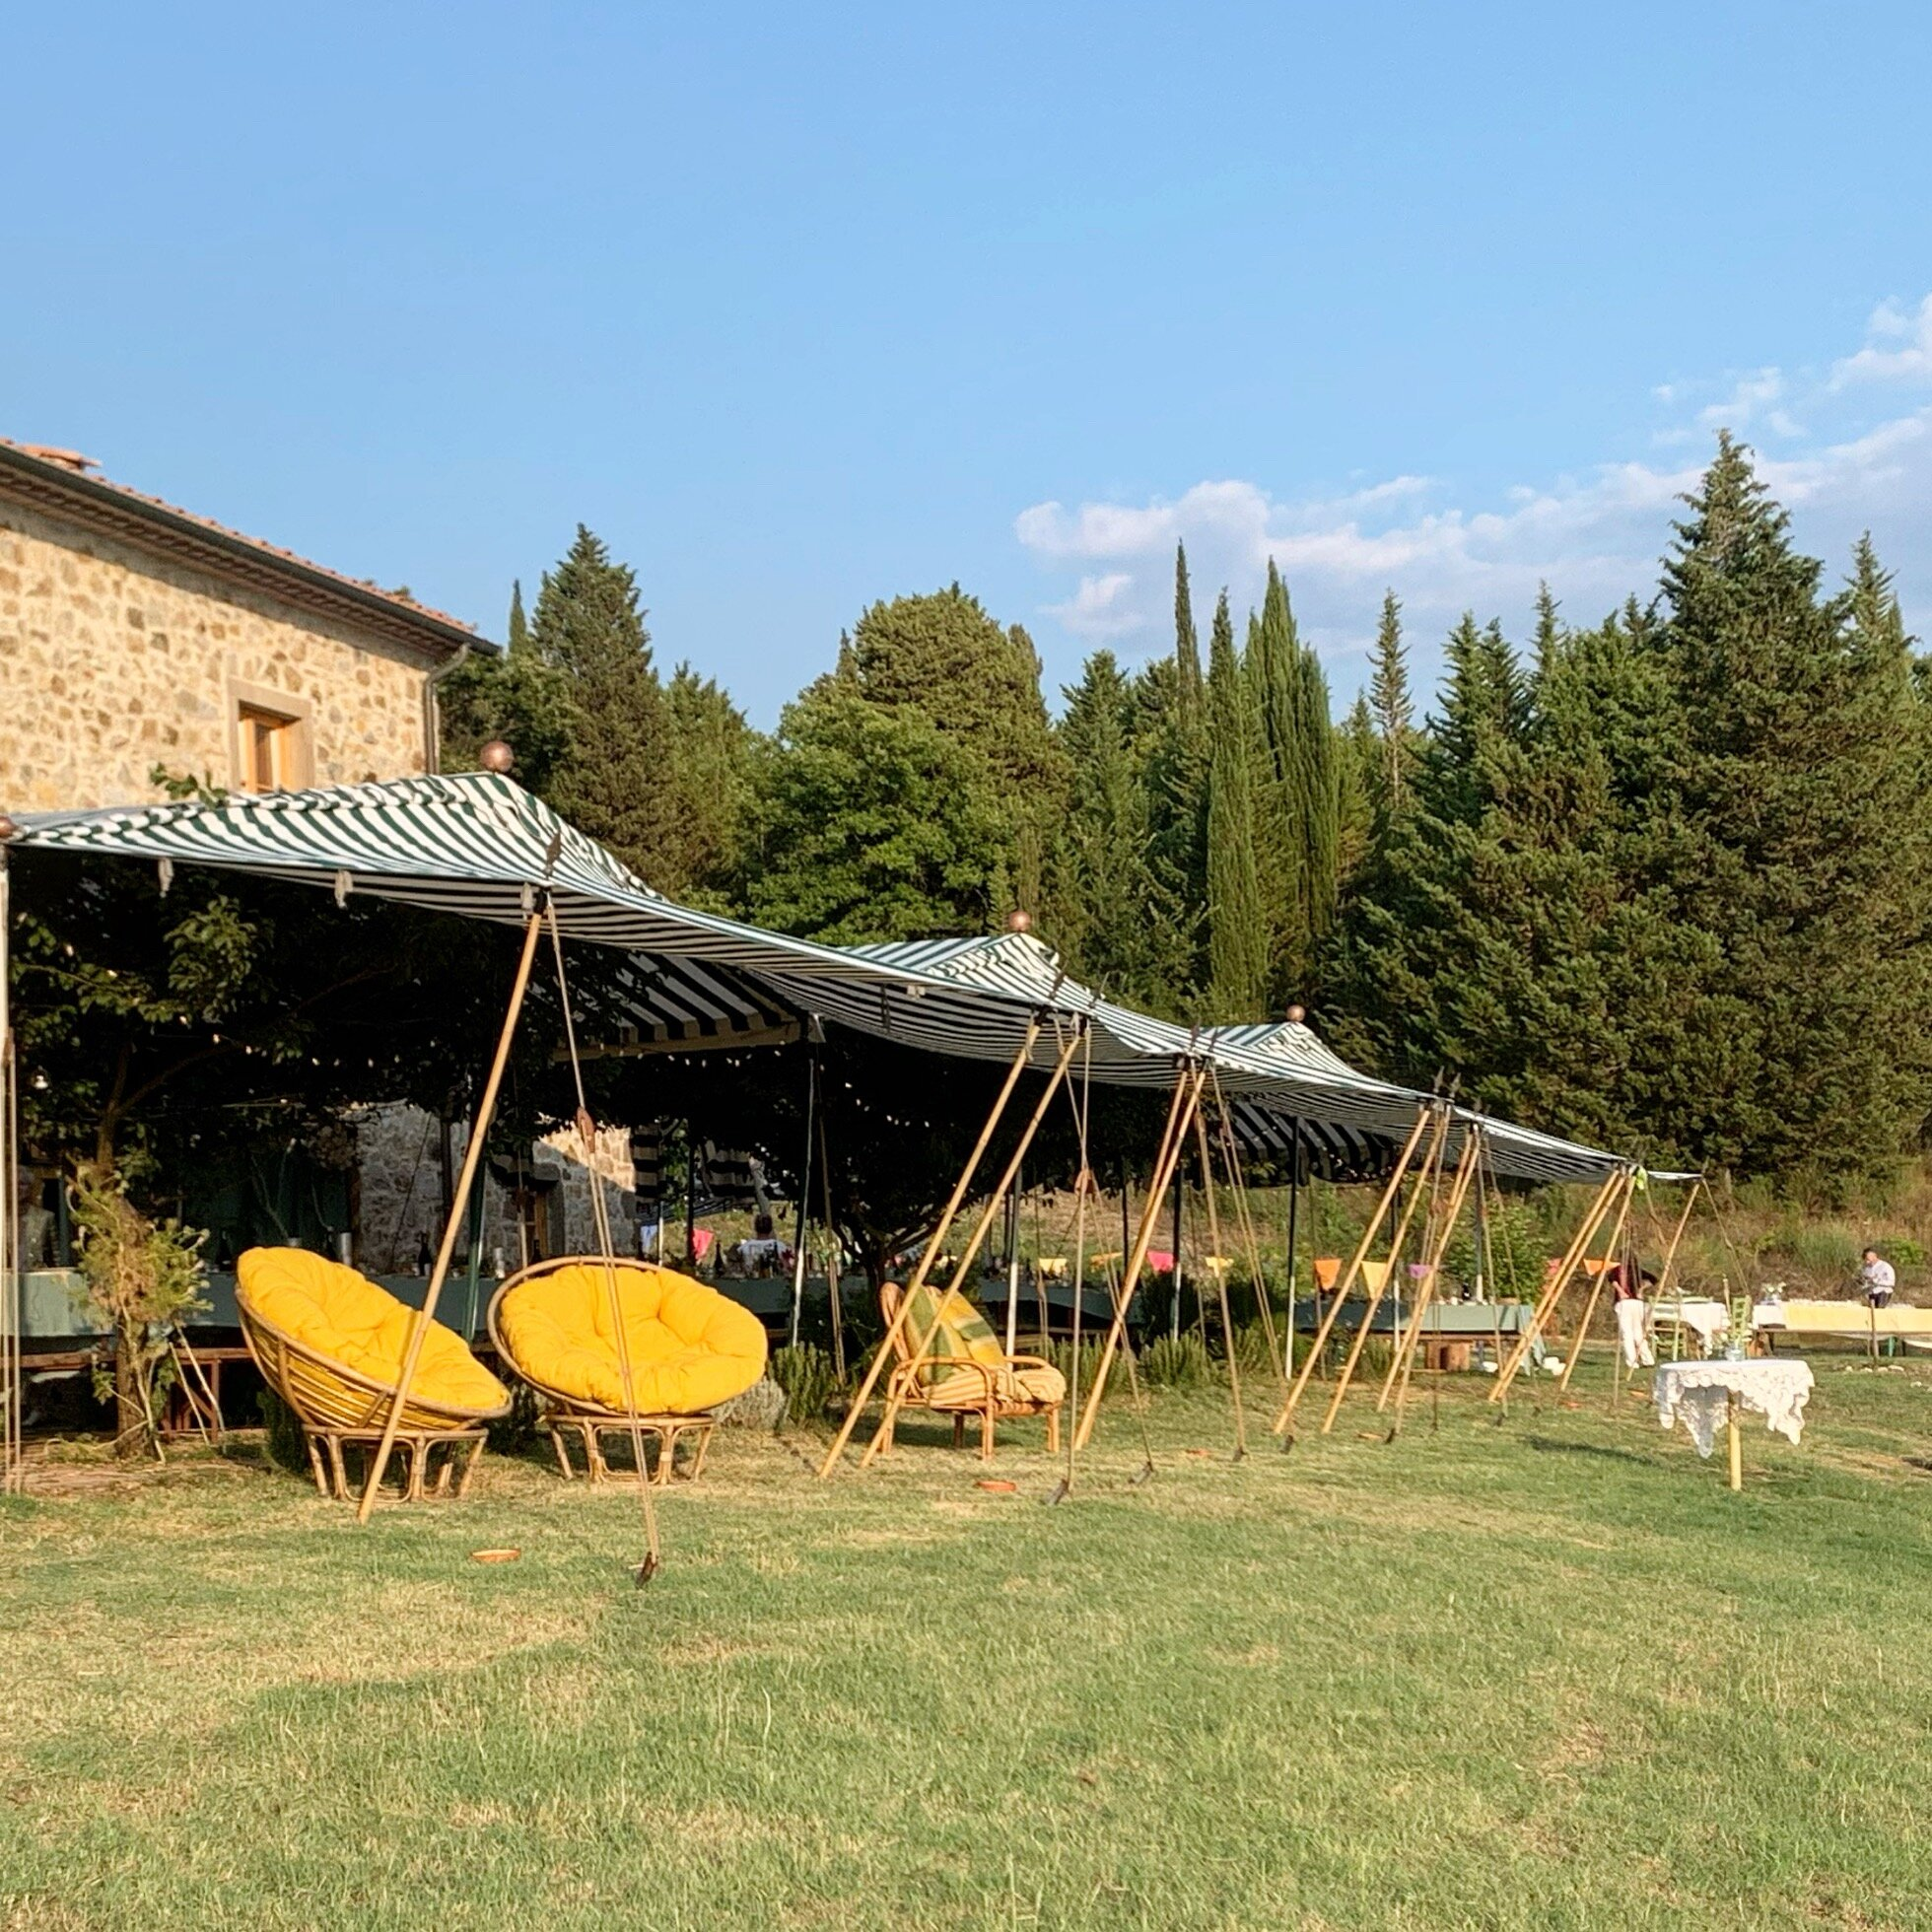 Tents and awning supplied by Italy's Guido Toschi, top maker of exquisite tents and pavilions of all descriptions.